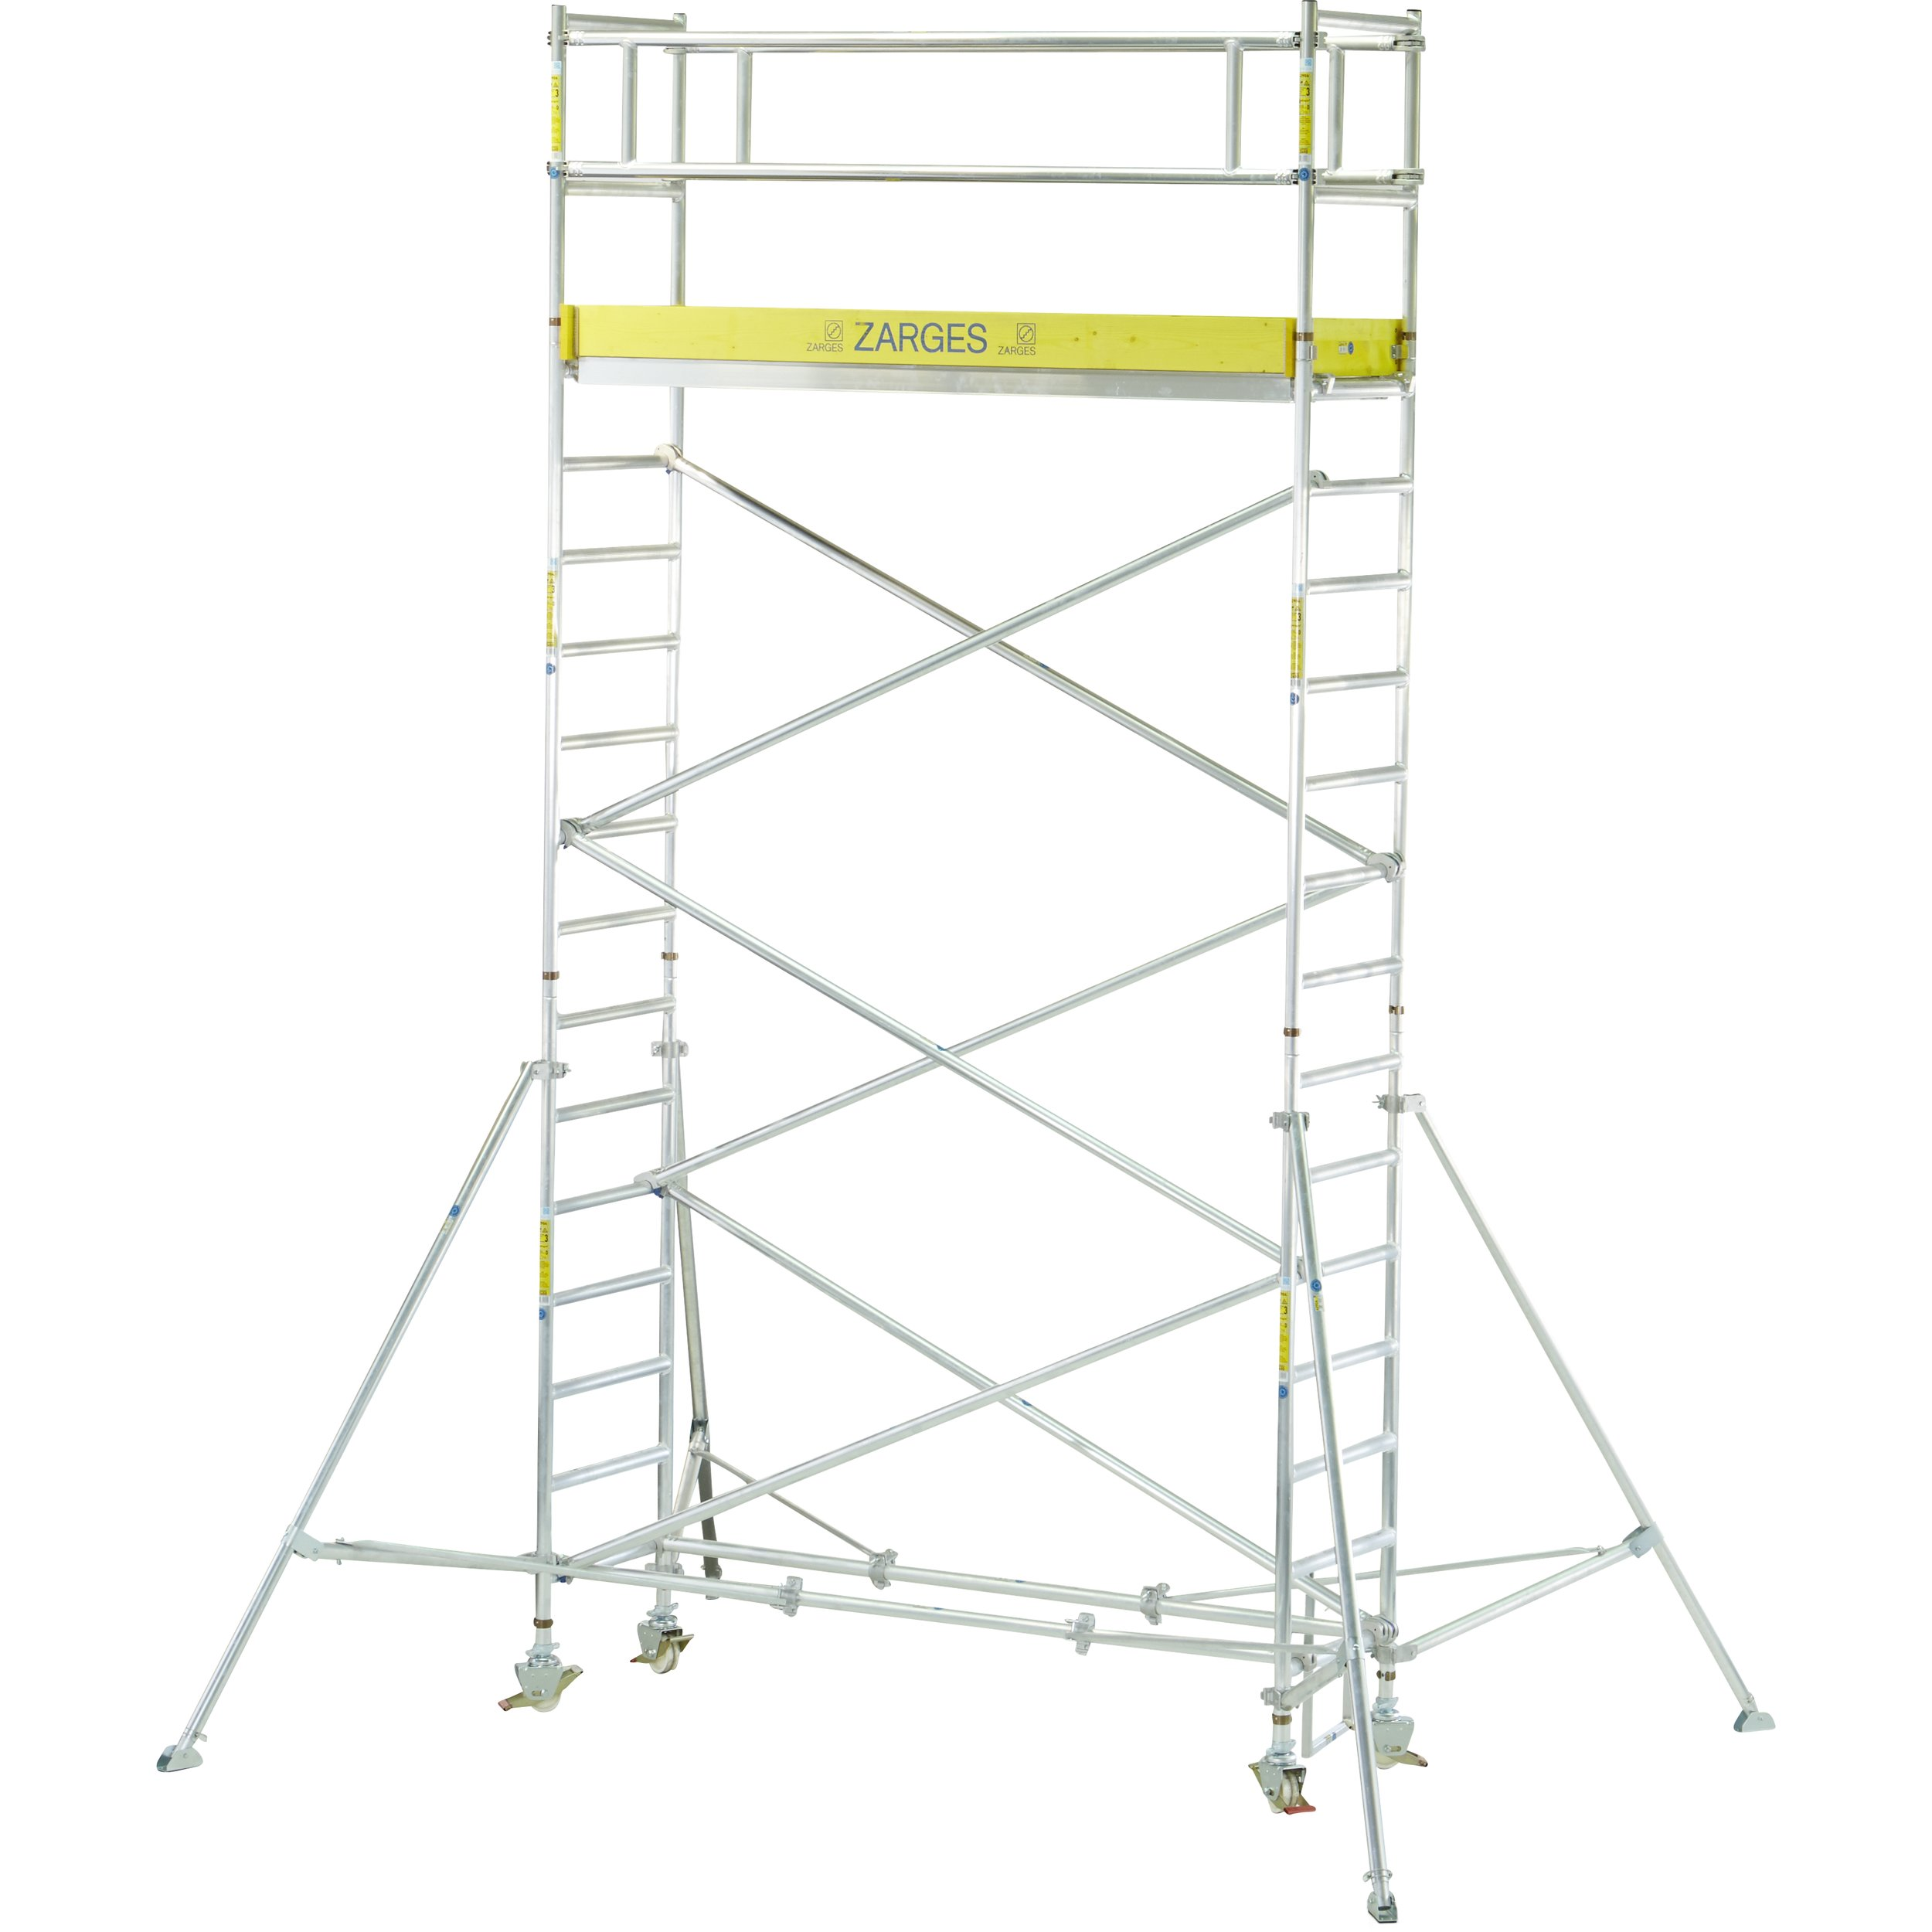 MultiTower 1T, 1,80 m | Mobile scaffold towers with